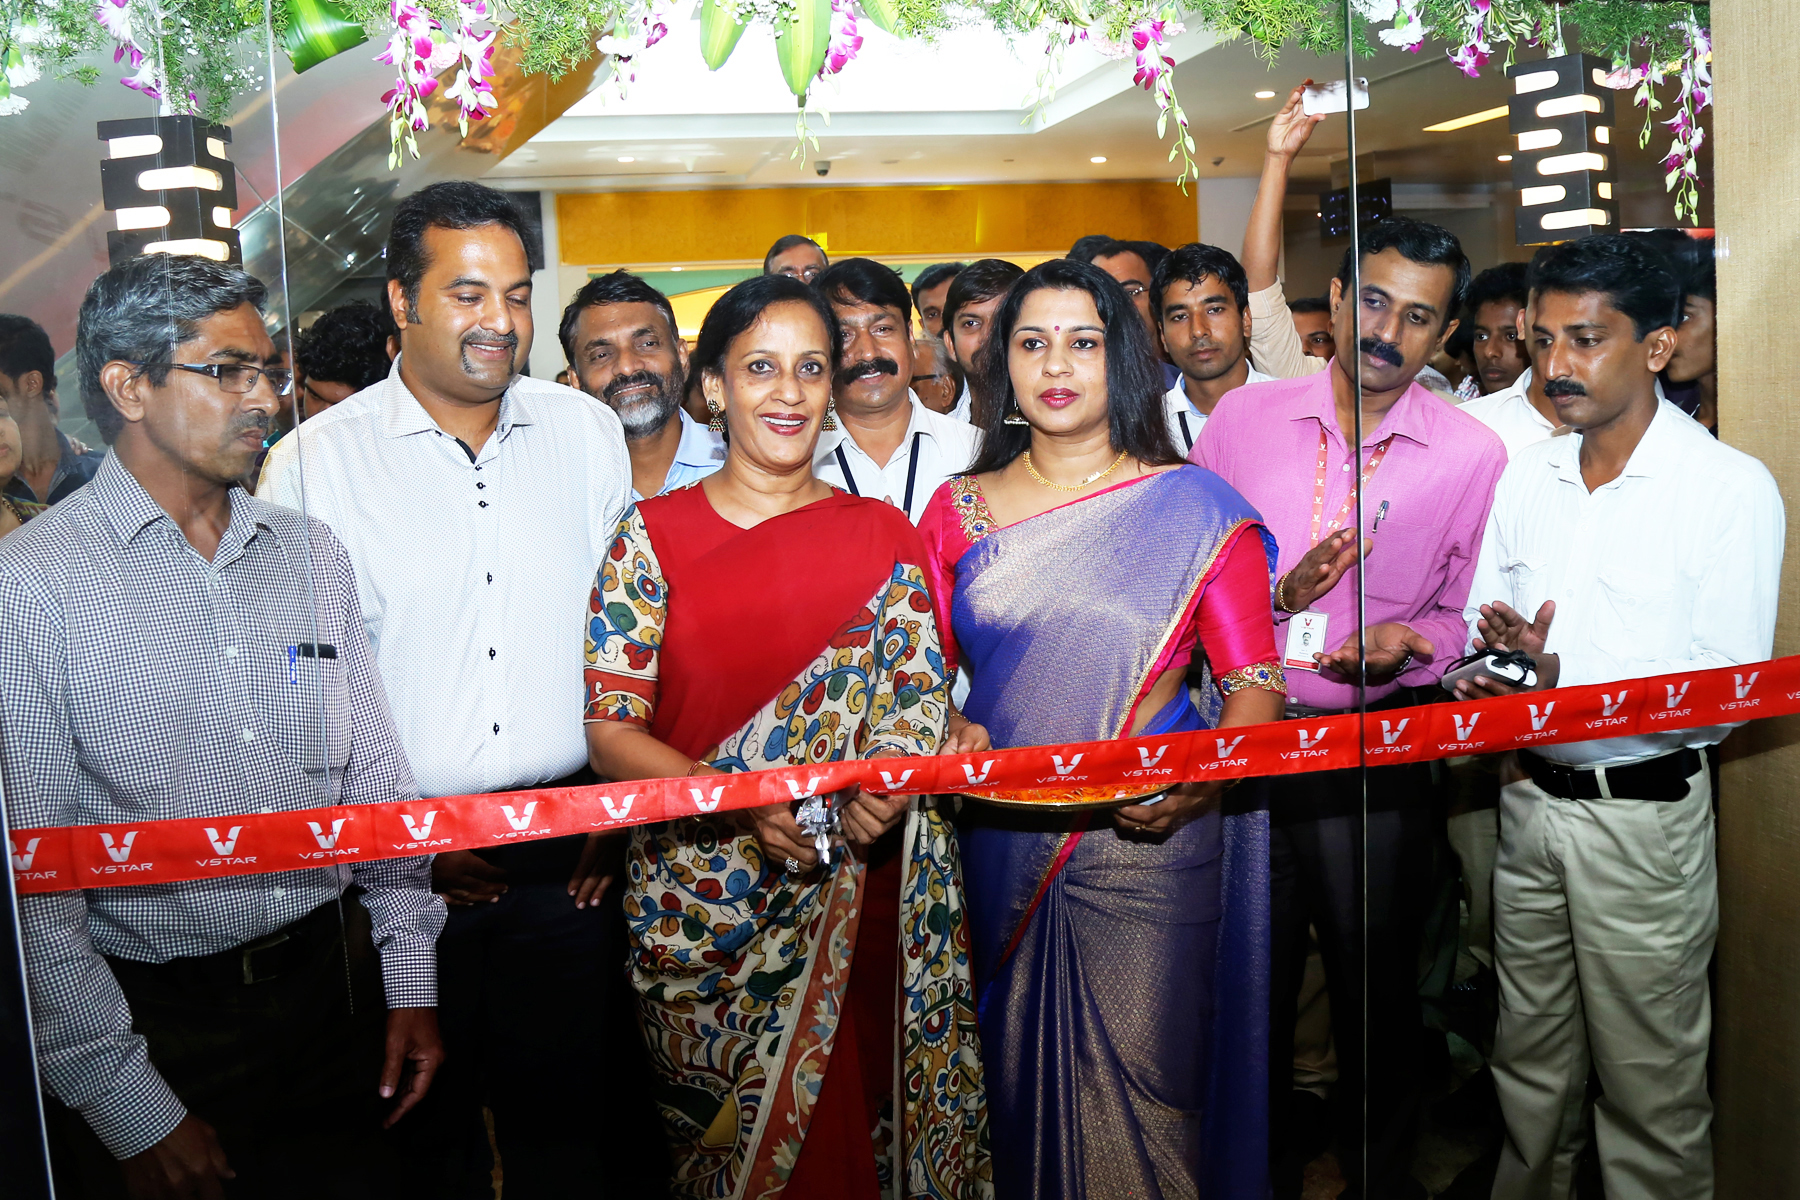 V star opens brand outlet in Thrissur